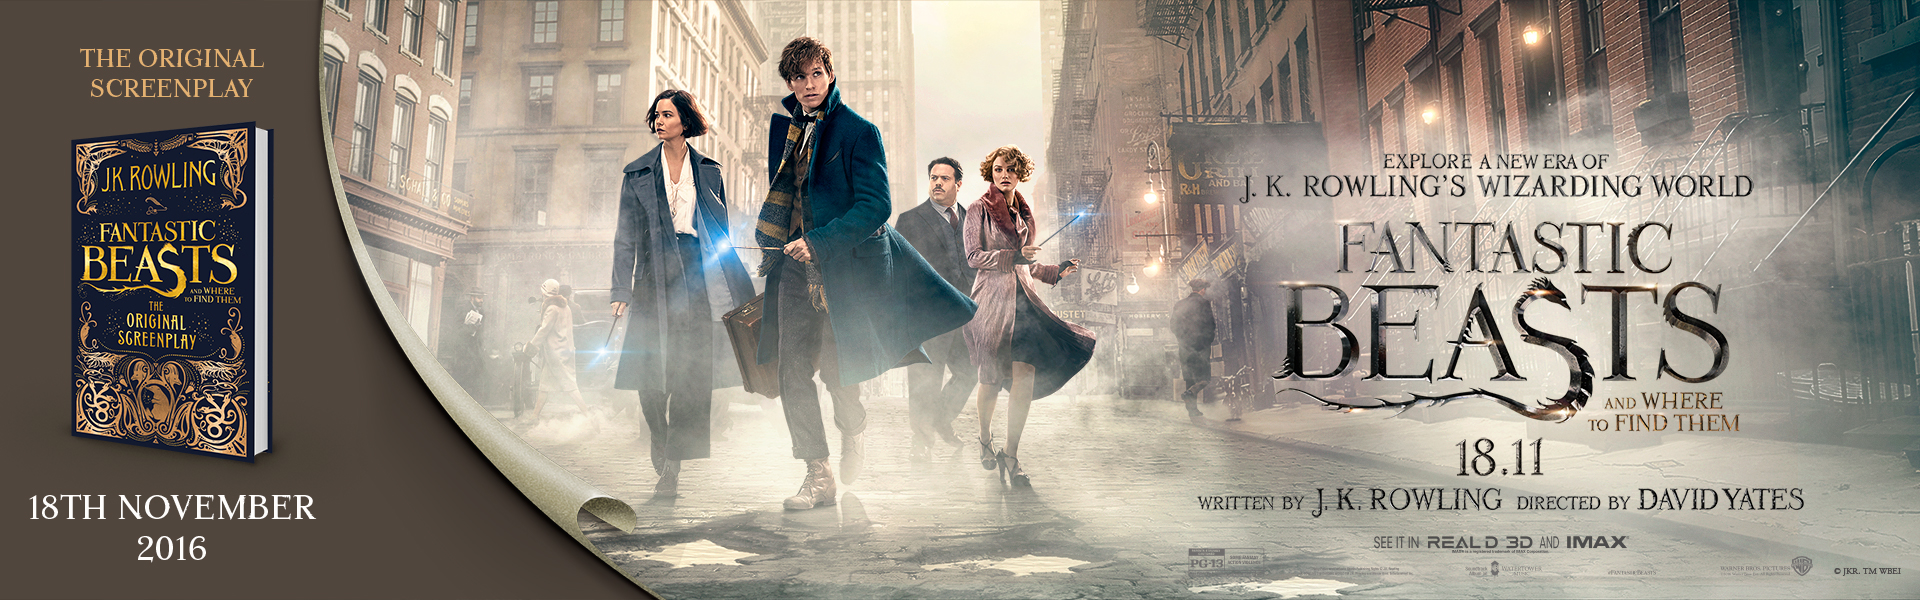 Fantastic Beasts and Where to Find Them: A Character Guide